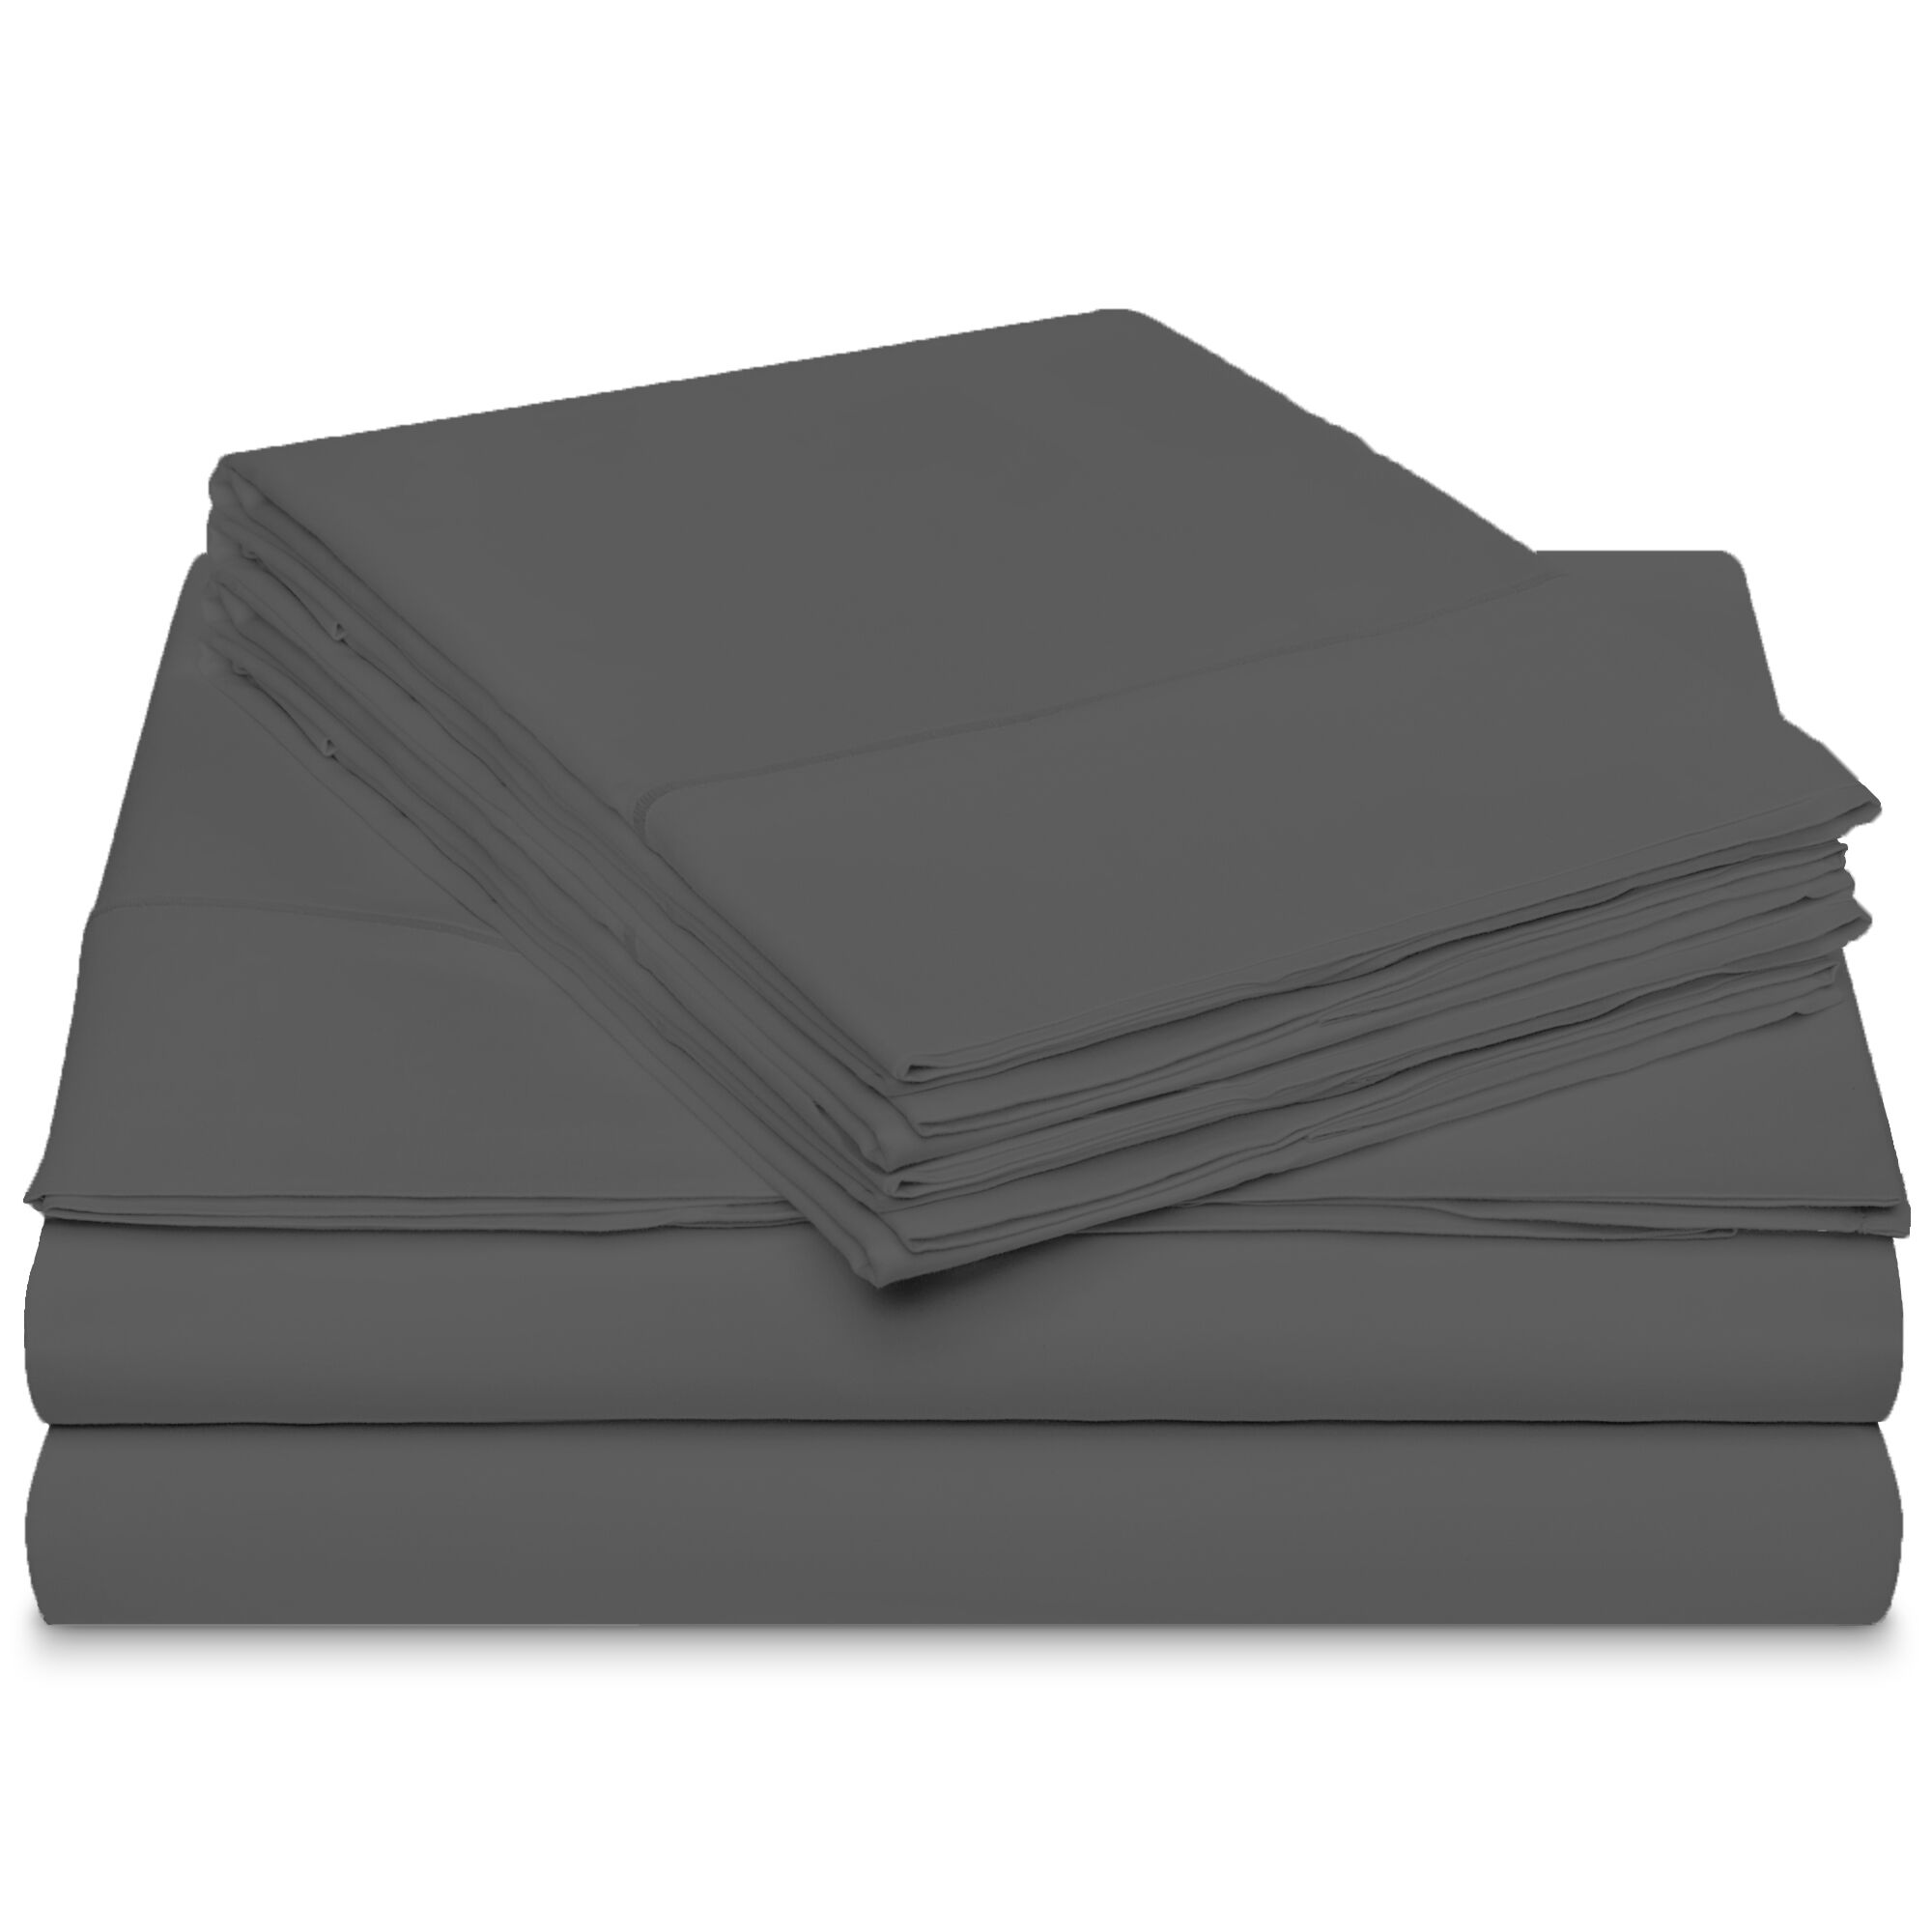 Conley Luxury 800 Thread Count 100% Cotton Sheet Set Color: Charcoal, Size: Queen